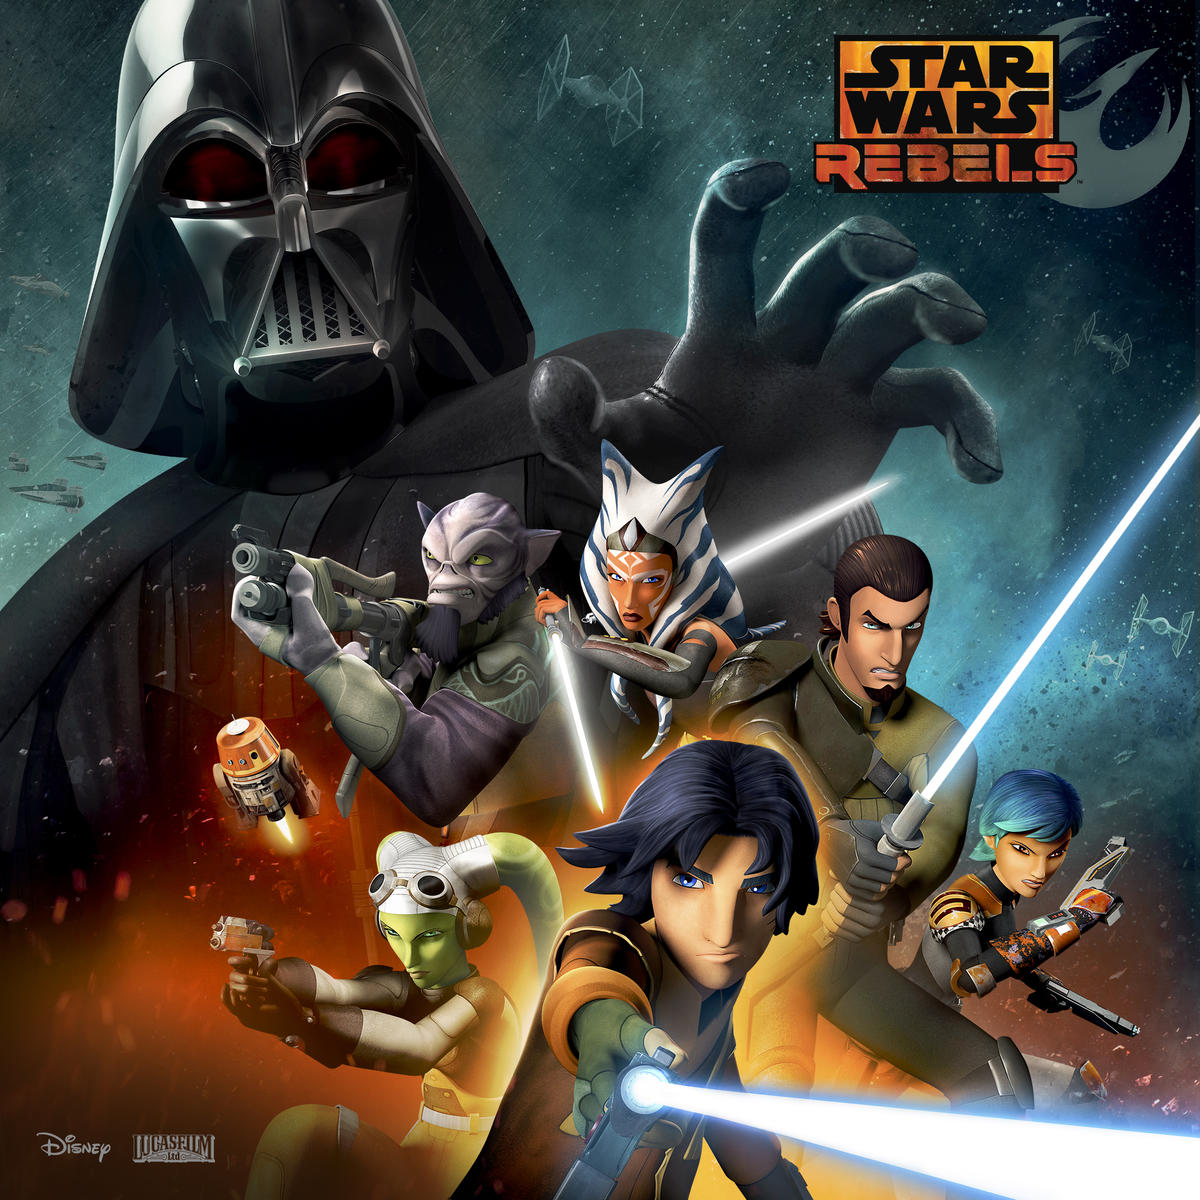 Star Wars Rebels - Animated Series Returns for a Second ... - photo#14